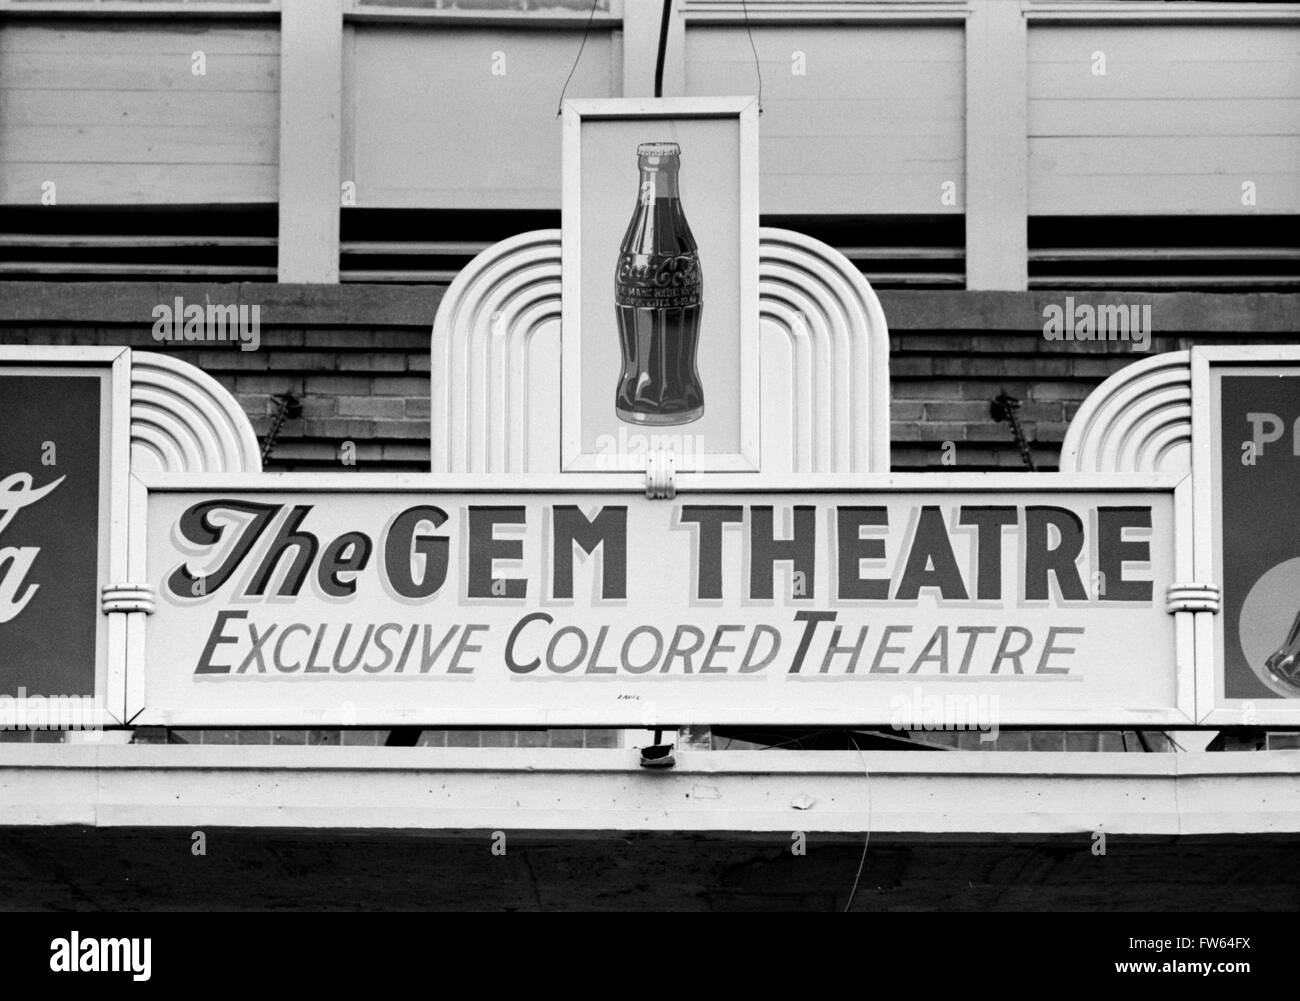 Racial Segregation, USA. 'Exclusive Colored Theatre' sign above a movie theater in Waco, Texas, USA. Photo - Stock Image